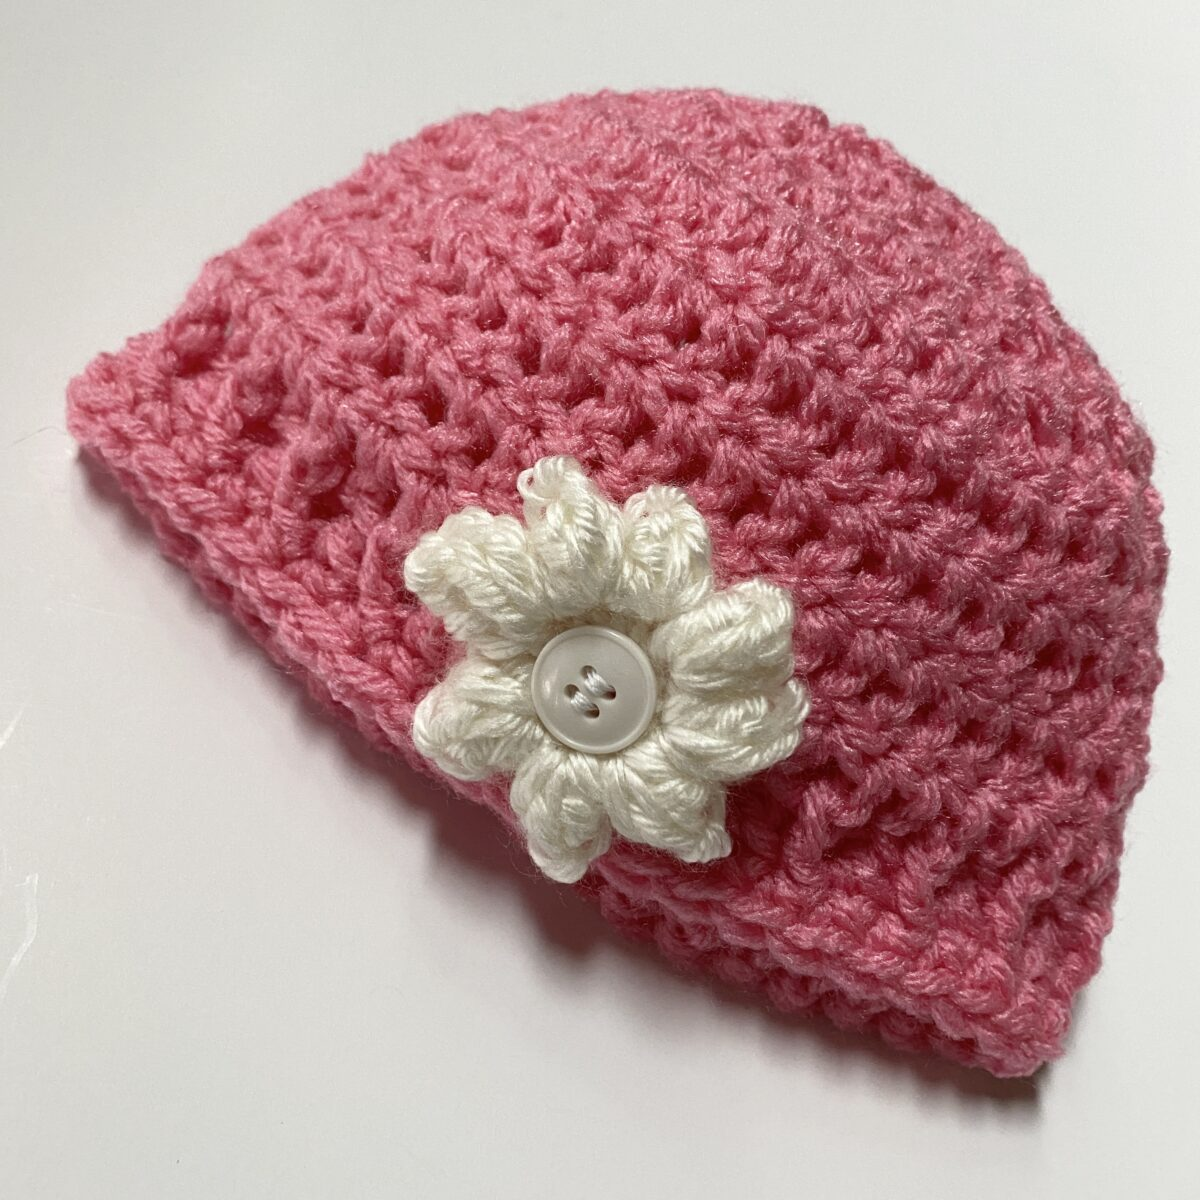 How to Crochet a Baby Beanie with a Flower